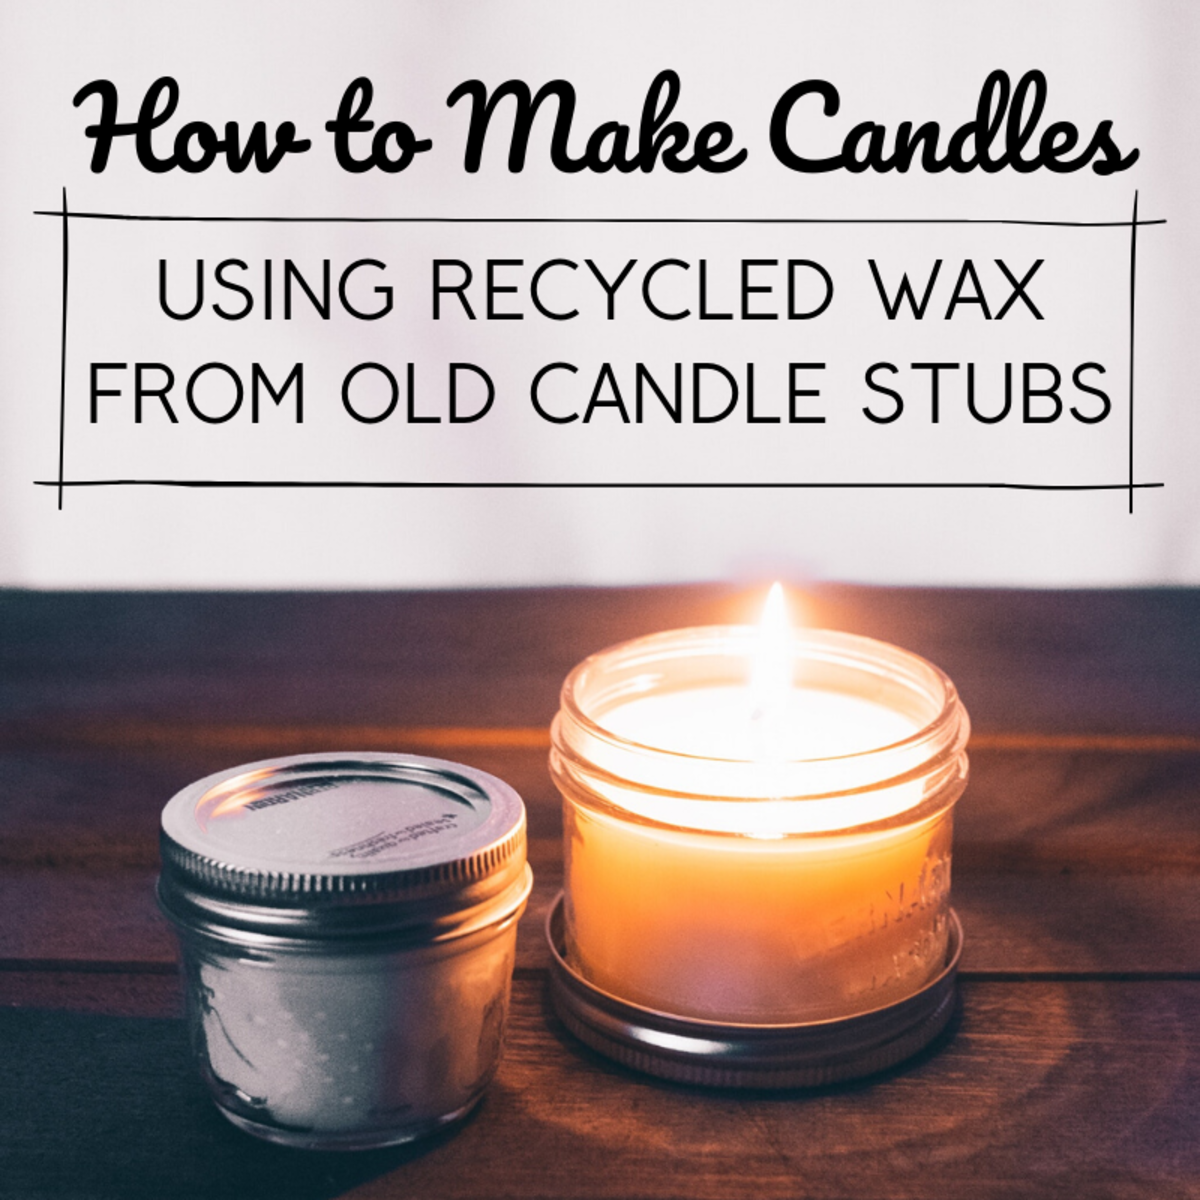 How to Make New Candles From Leftover Wax and Old Stubs